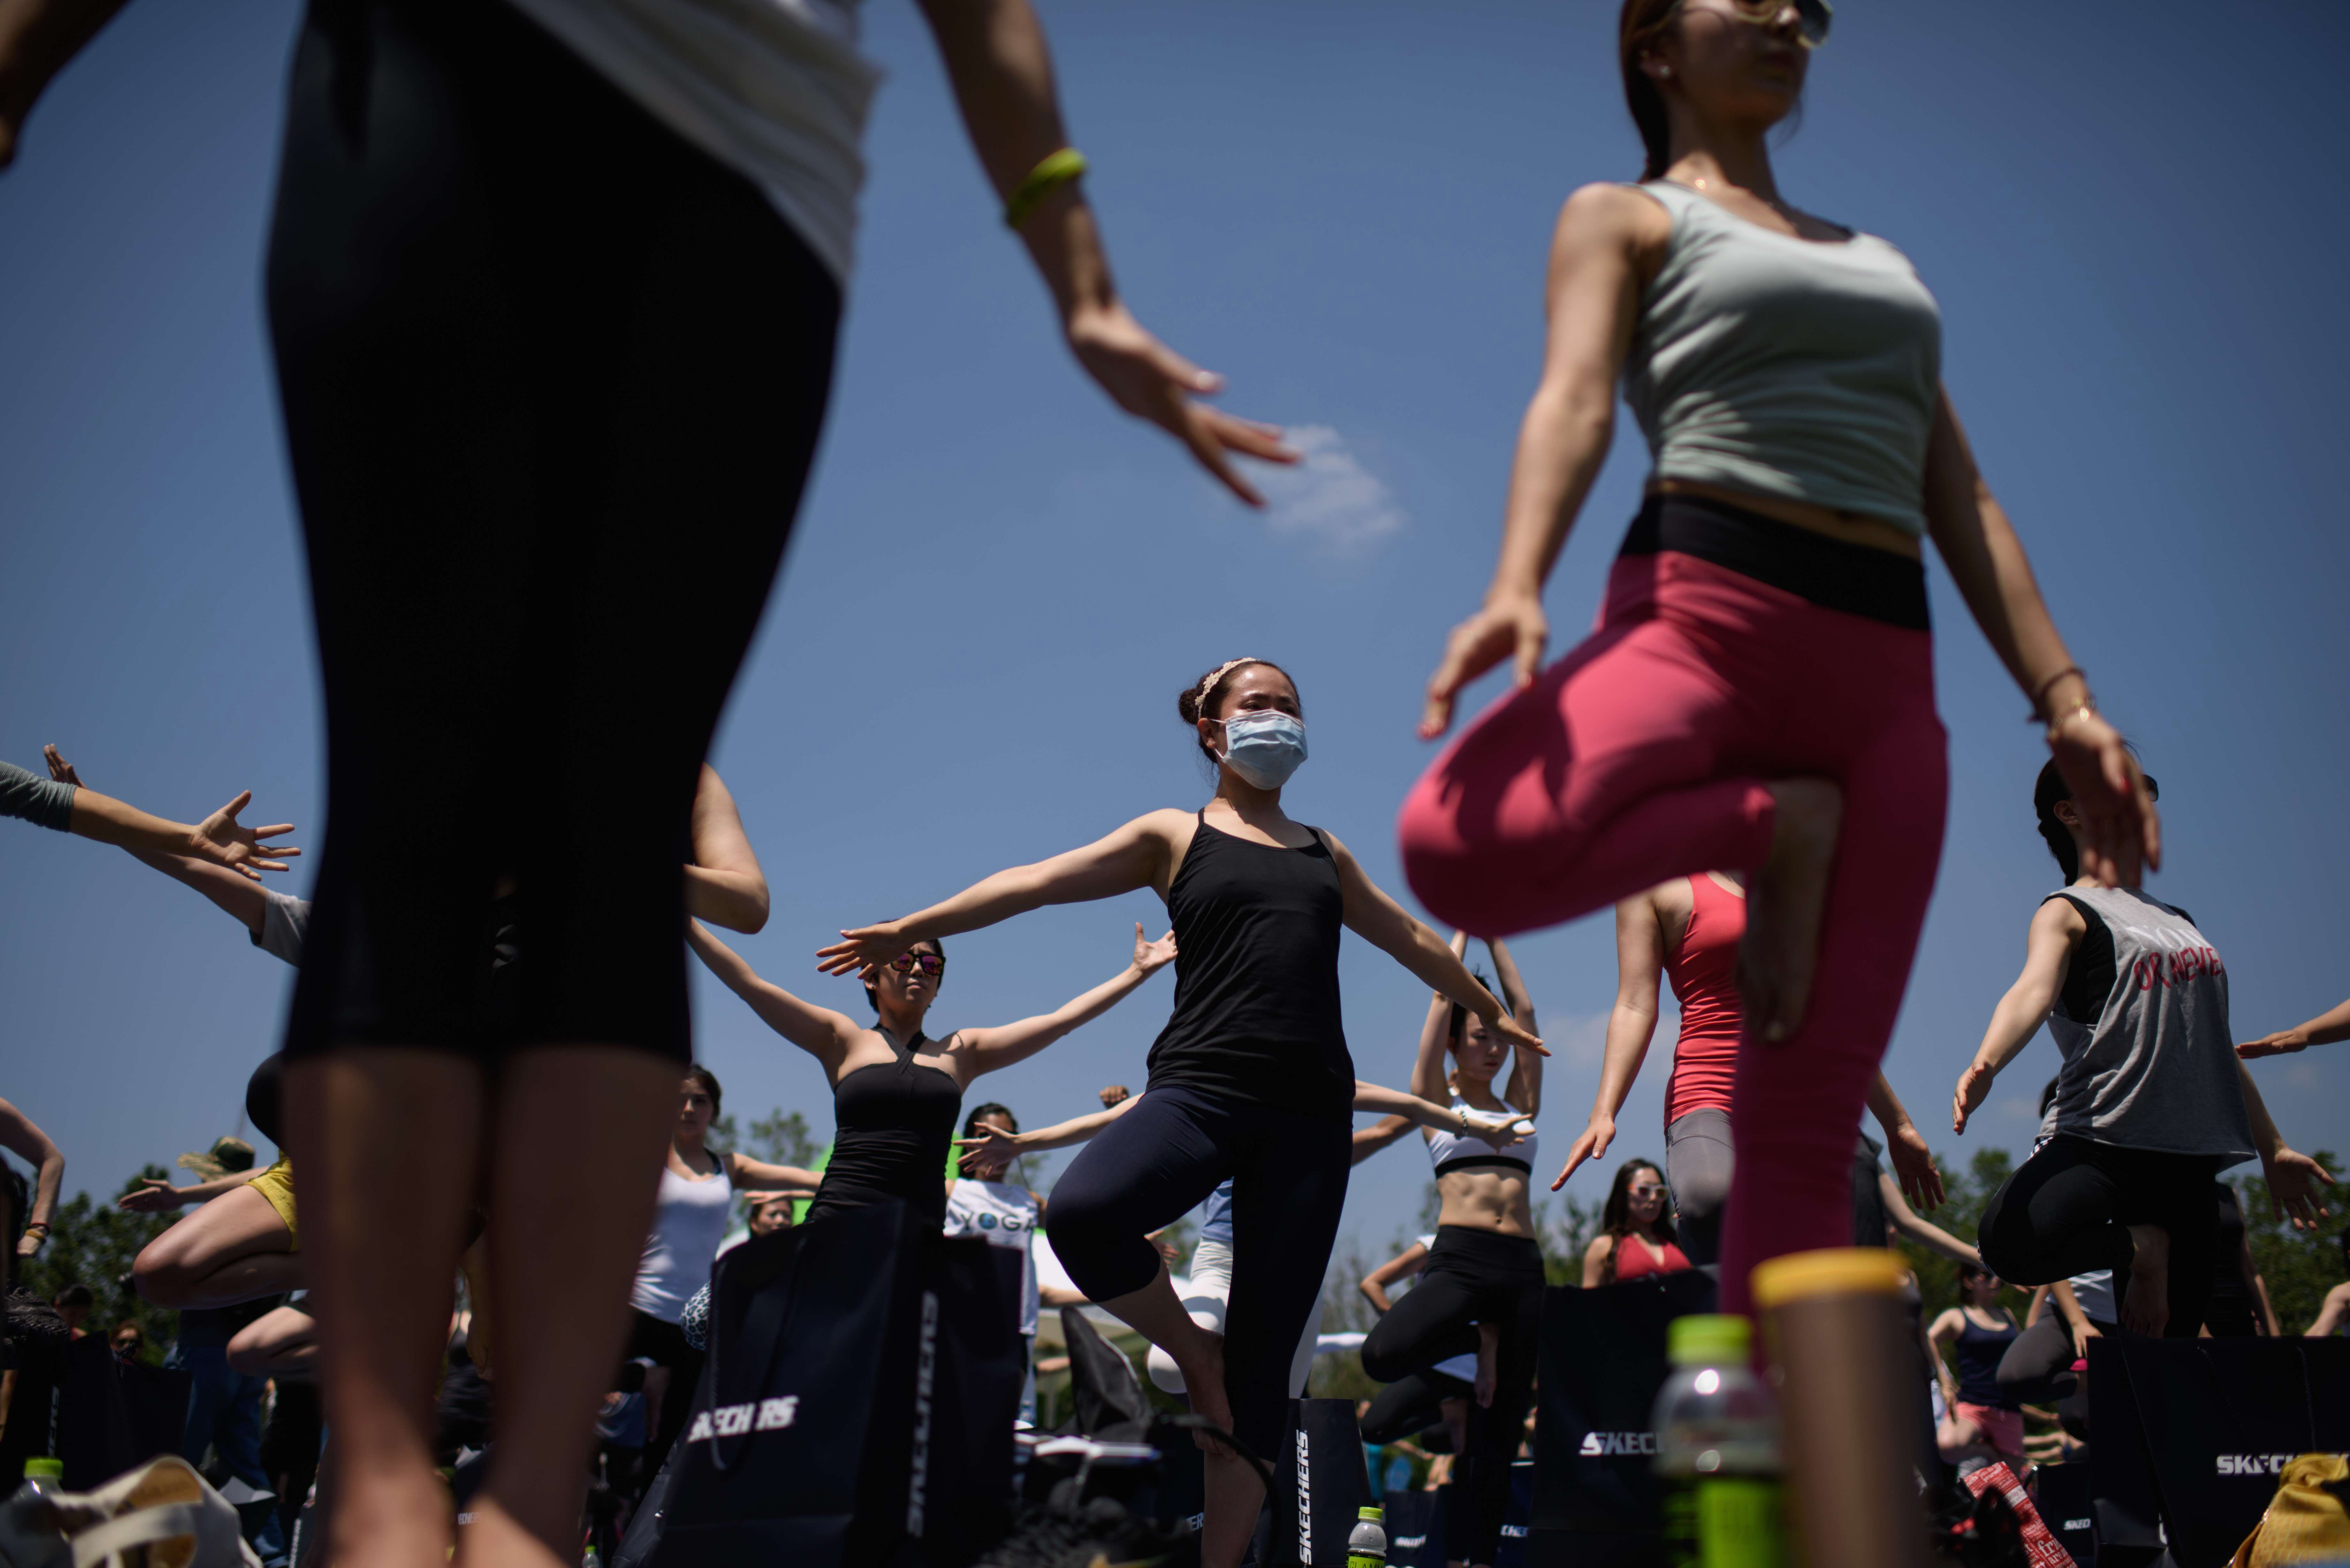 A woman wearing a mask takes part in the International Yoga Day event in Seoul, South Korea, on June 21, 2015.